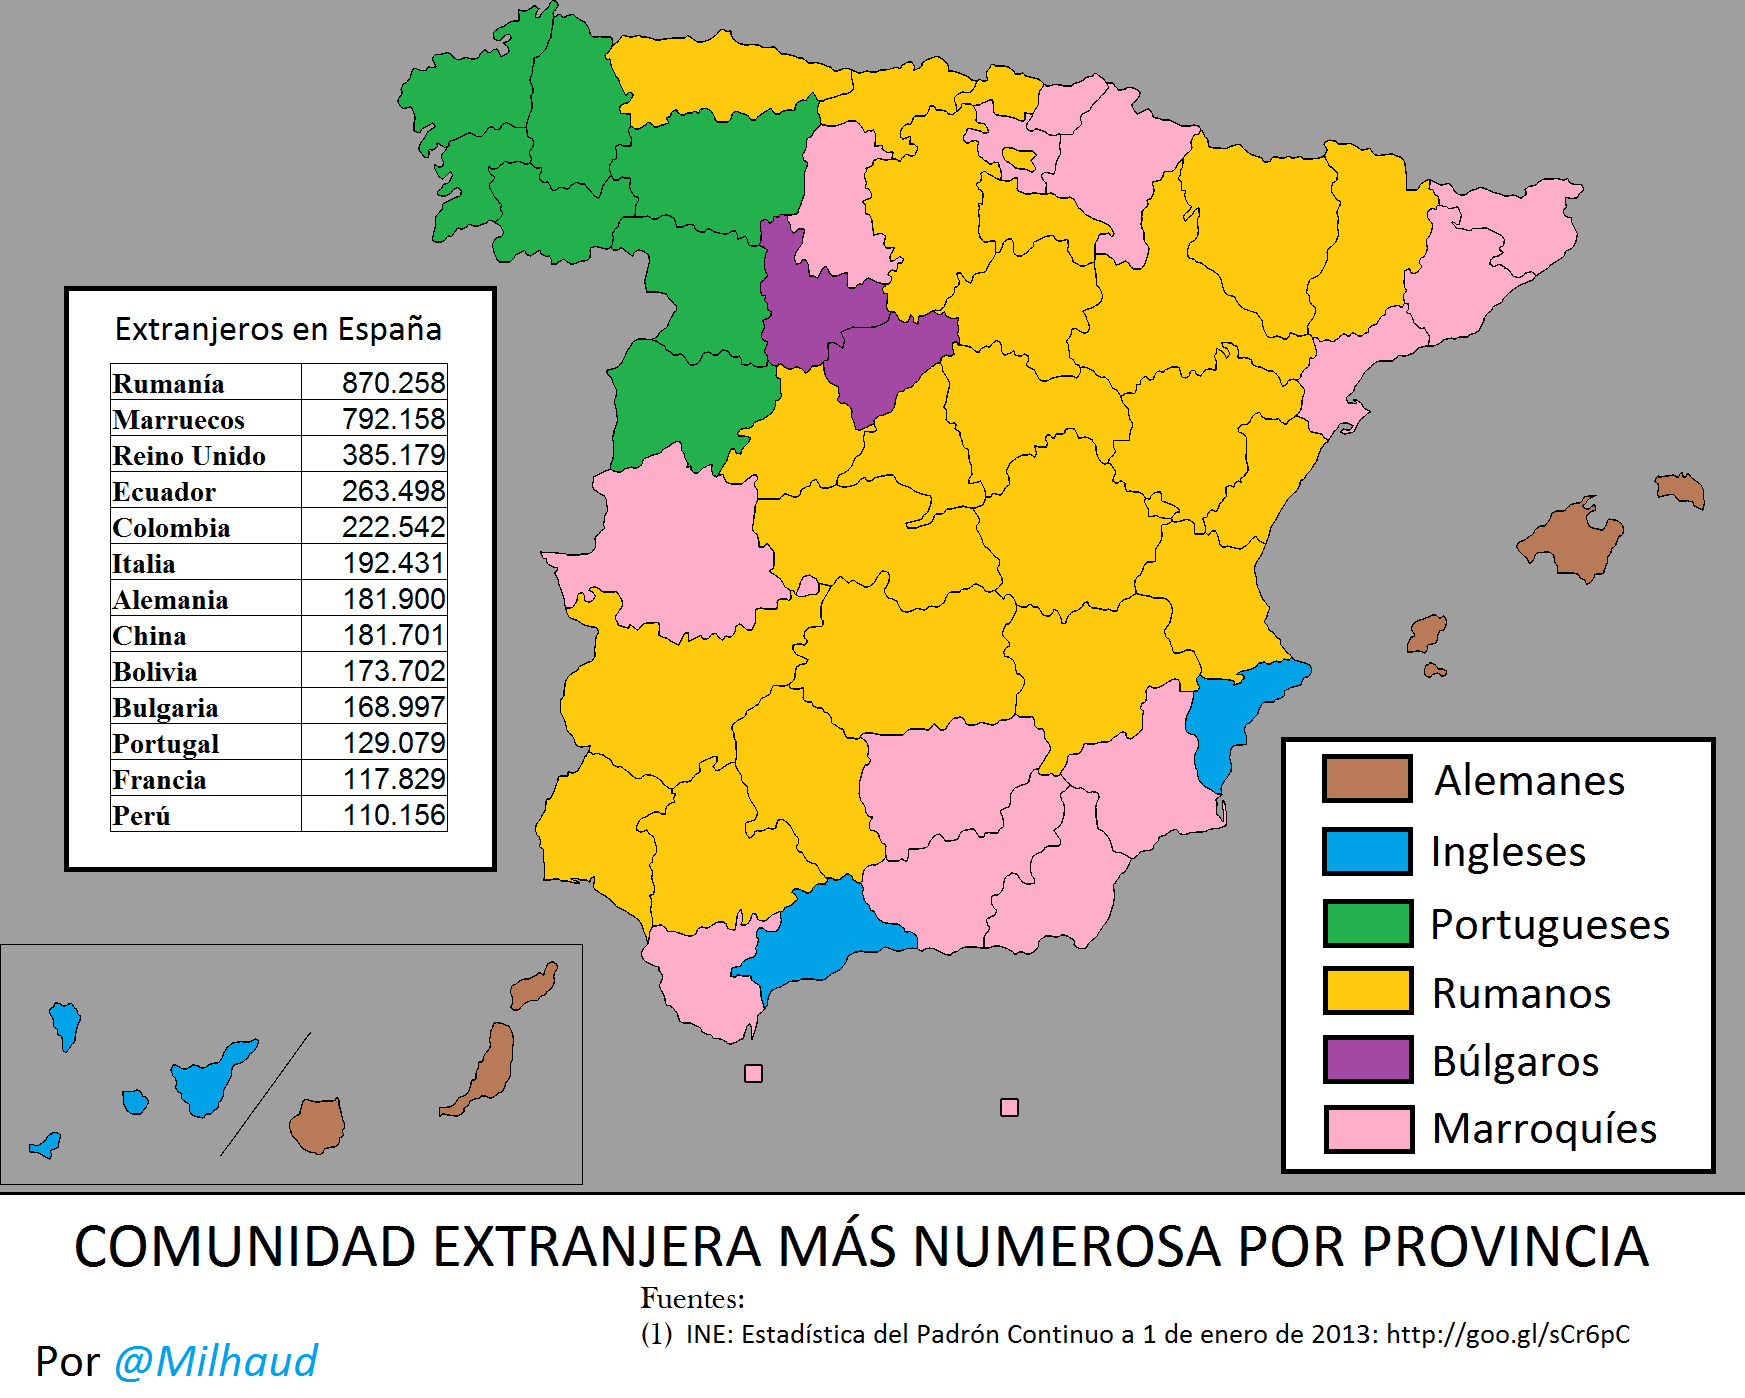 7 Fascinating Maps About Spain To Geek Out Over Map Map Of Spain Provinces Of Spain